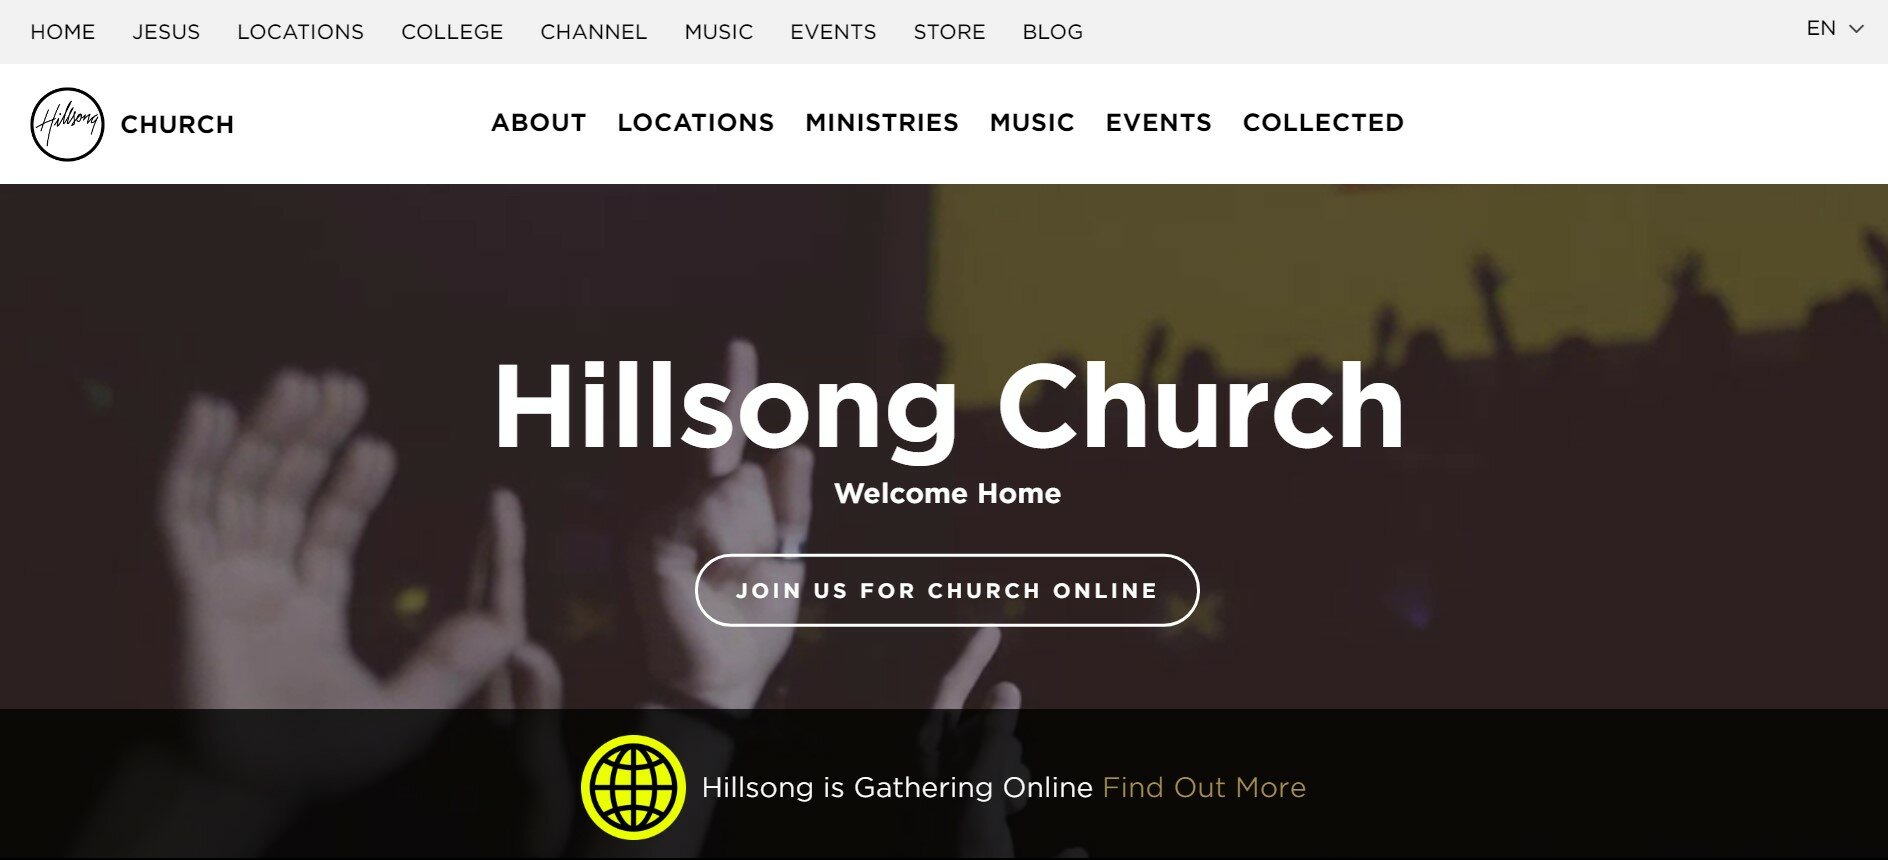 Hillsong Church has one of our favorite church websites.